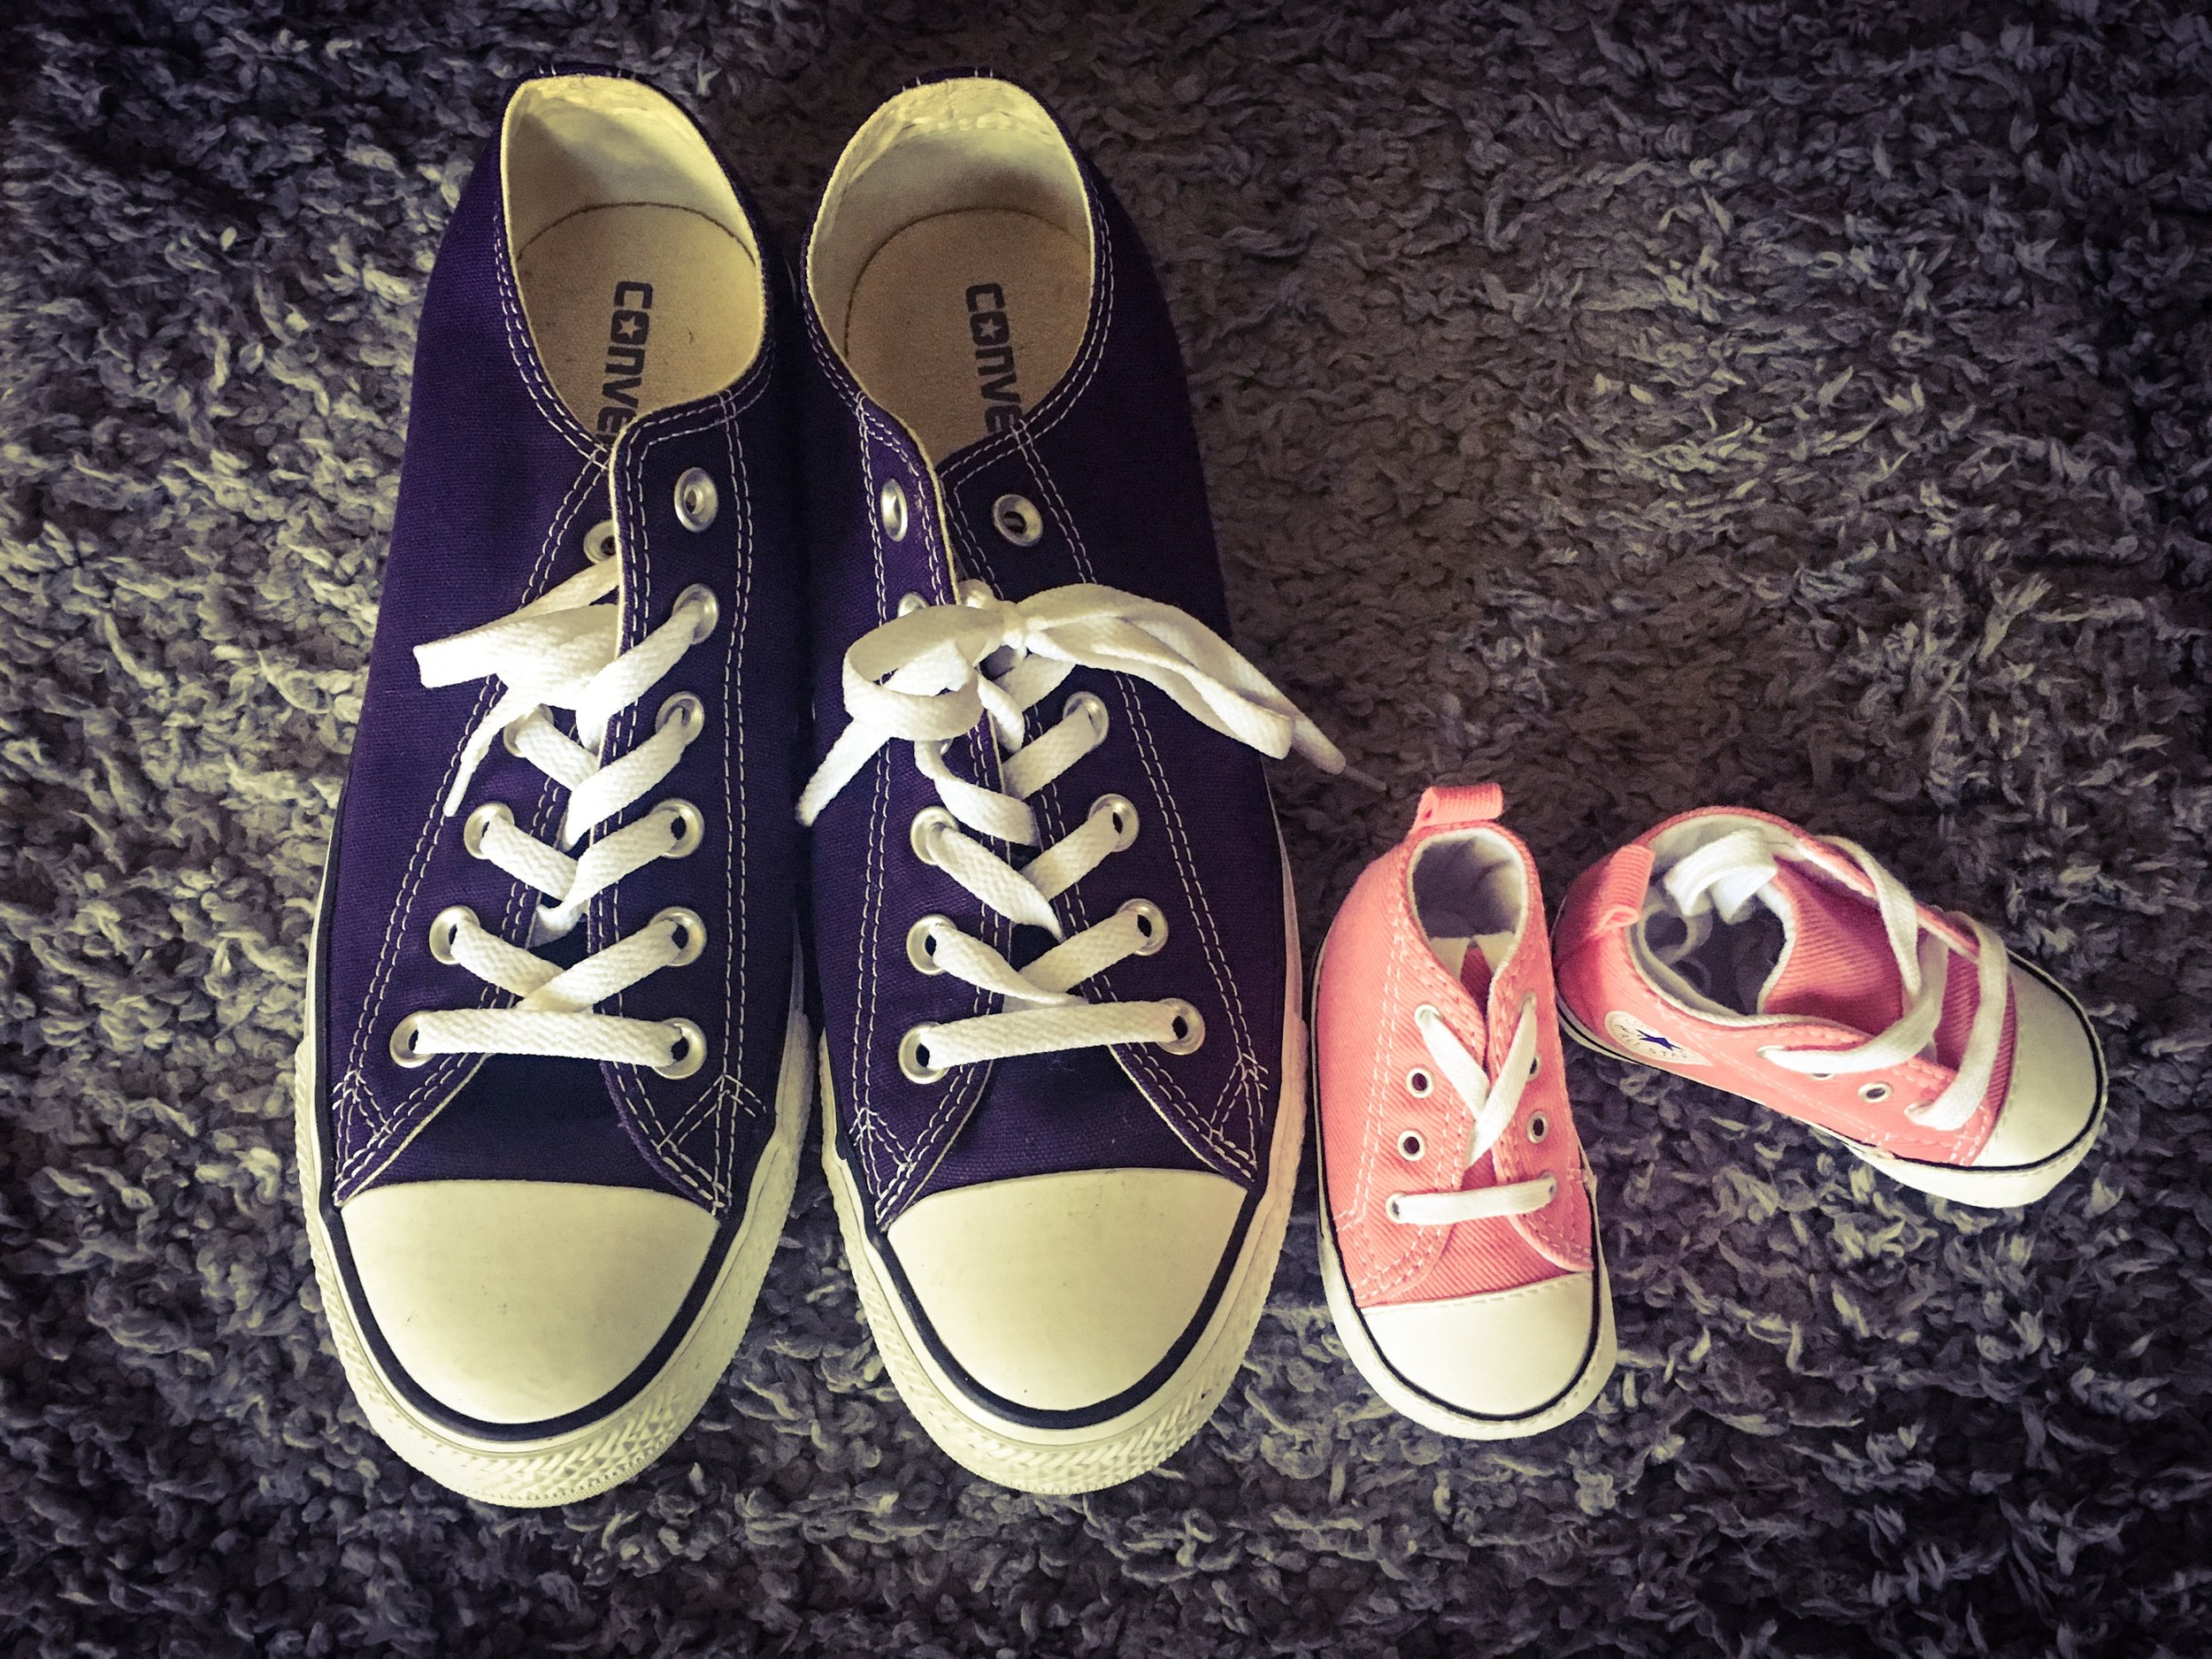 Twinnin' for our first road trip! Chucks for all!